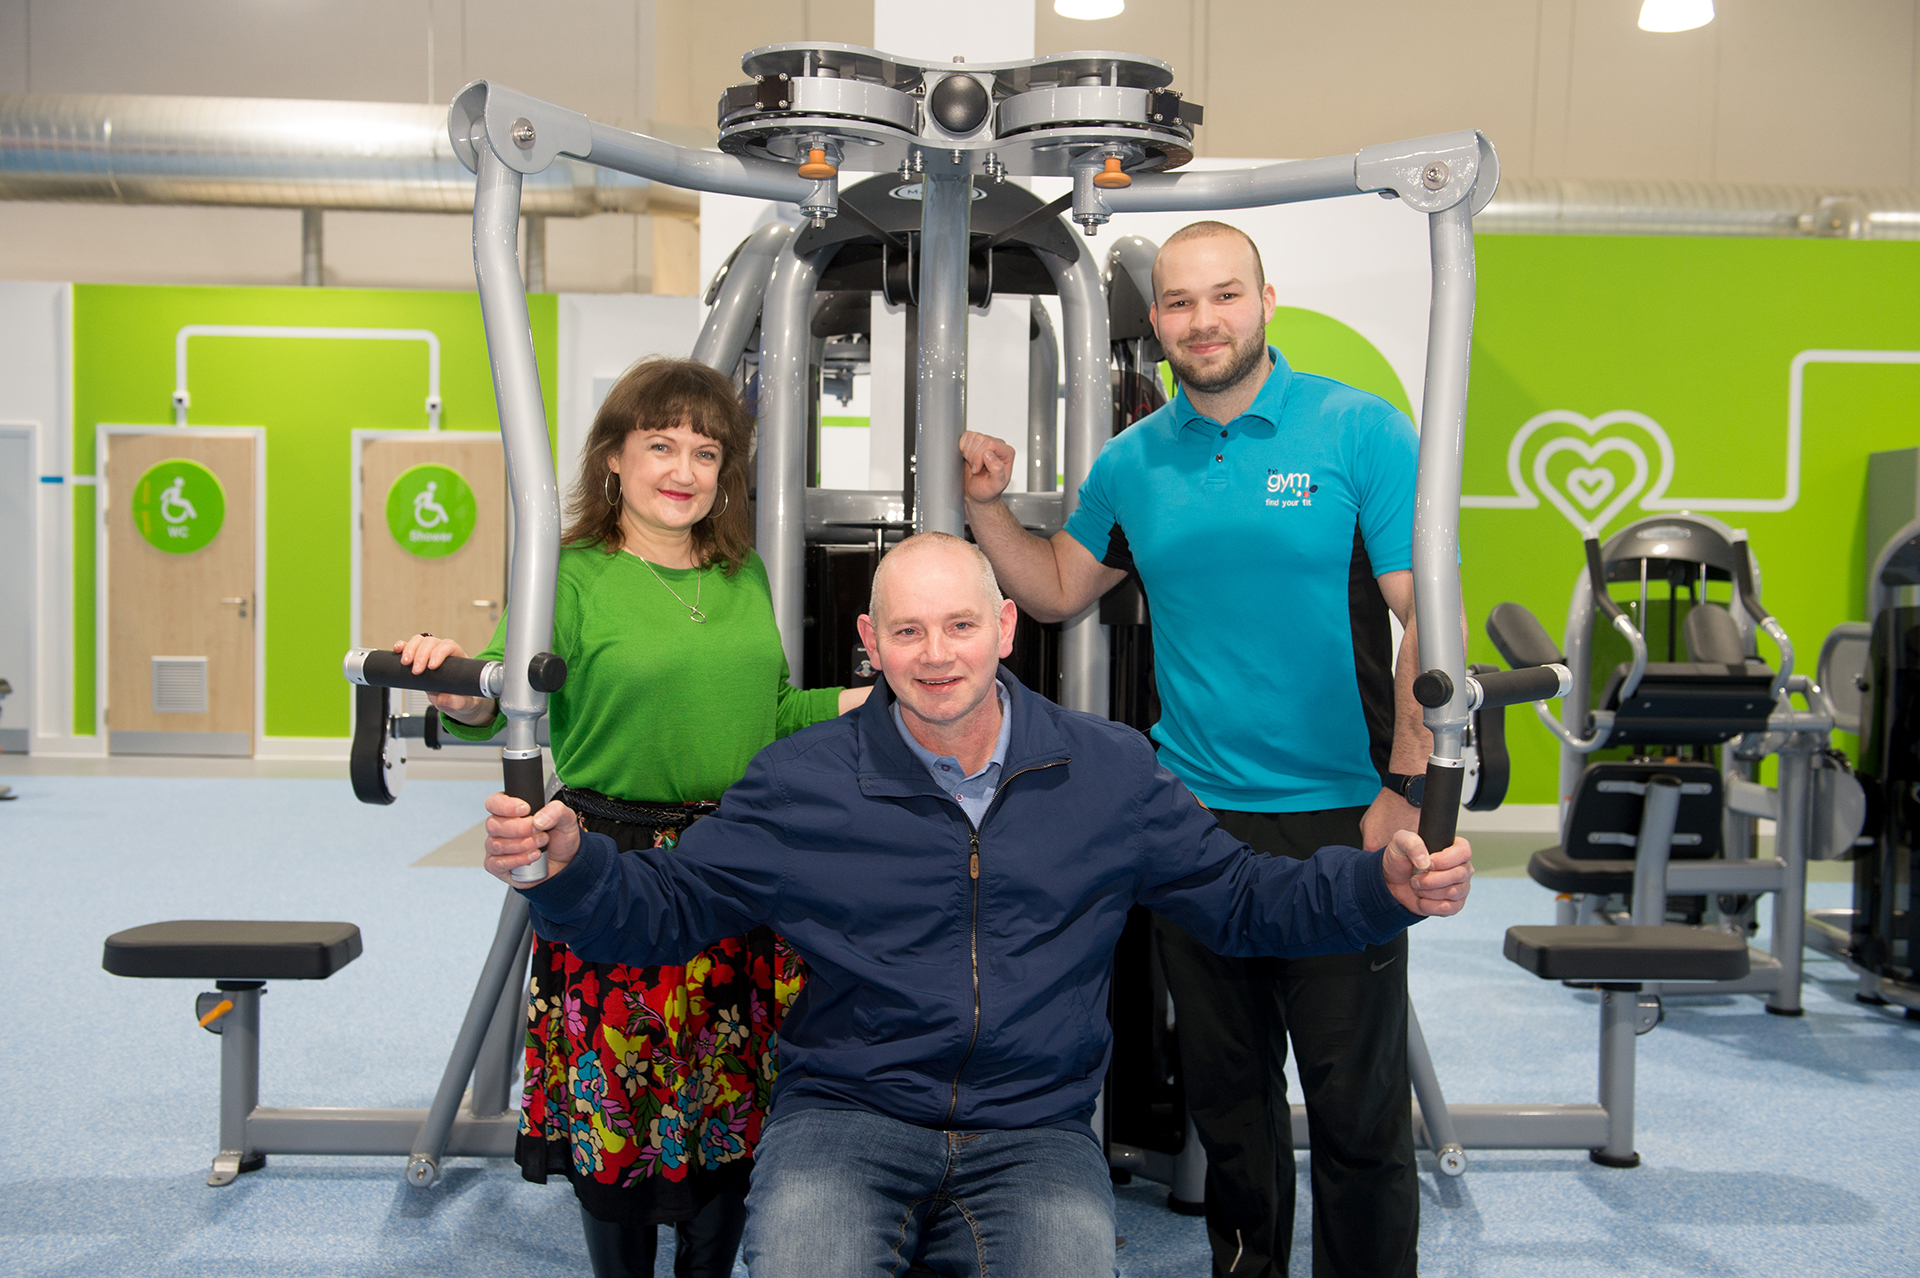 Stockport Review Extra subscriber wins 6 month gym membership